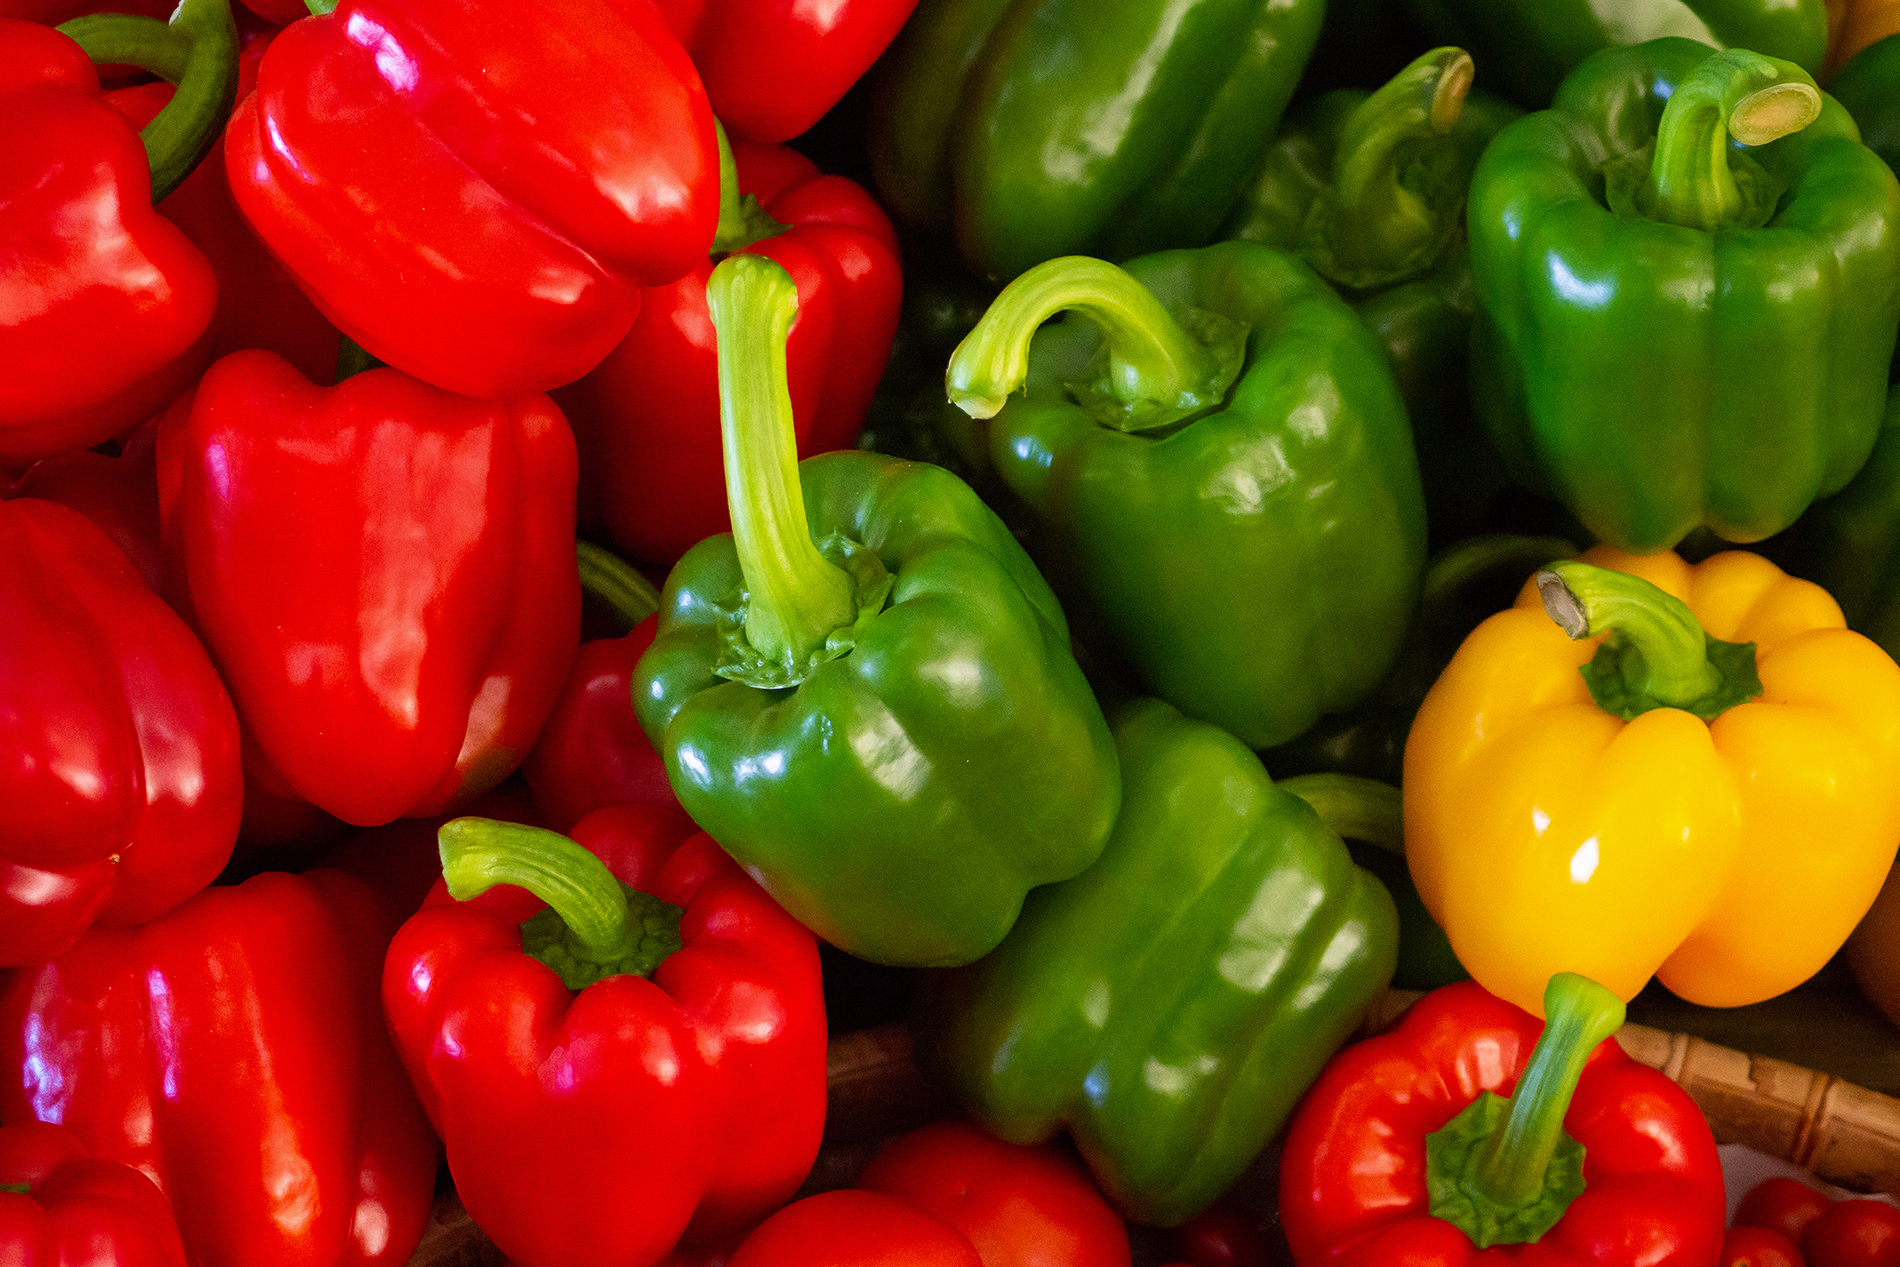 Red, green and yellow bell peppers